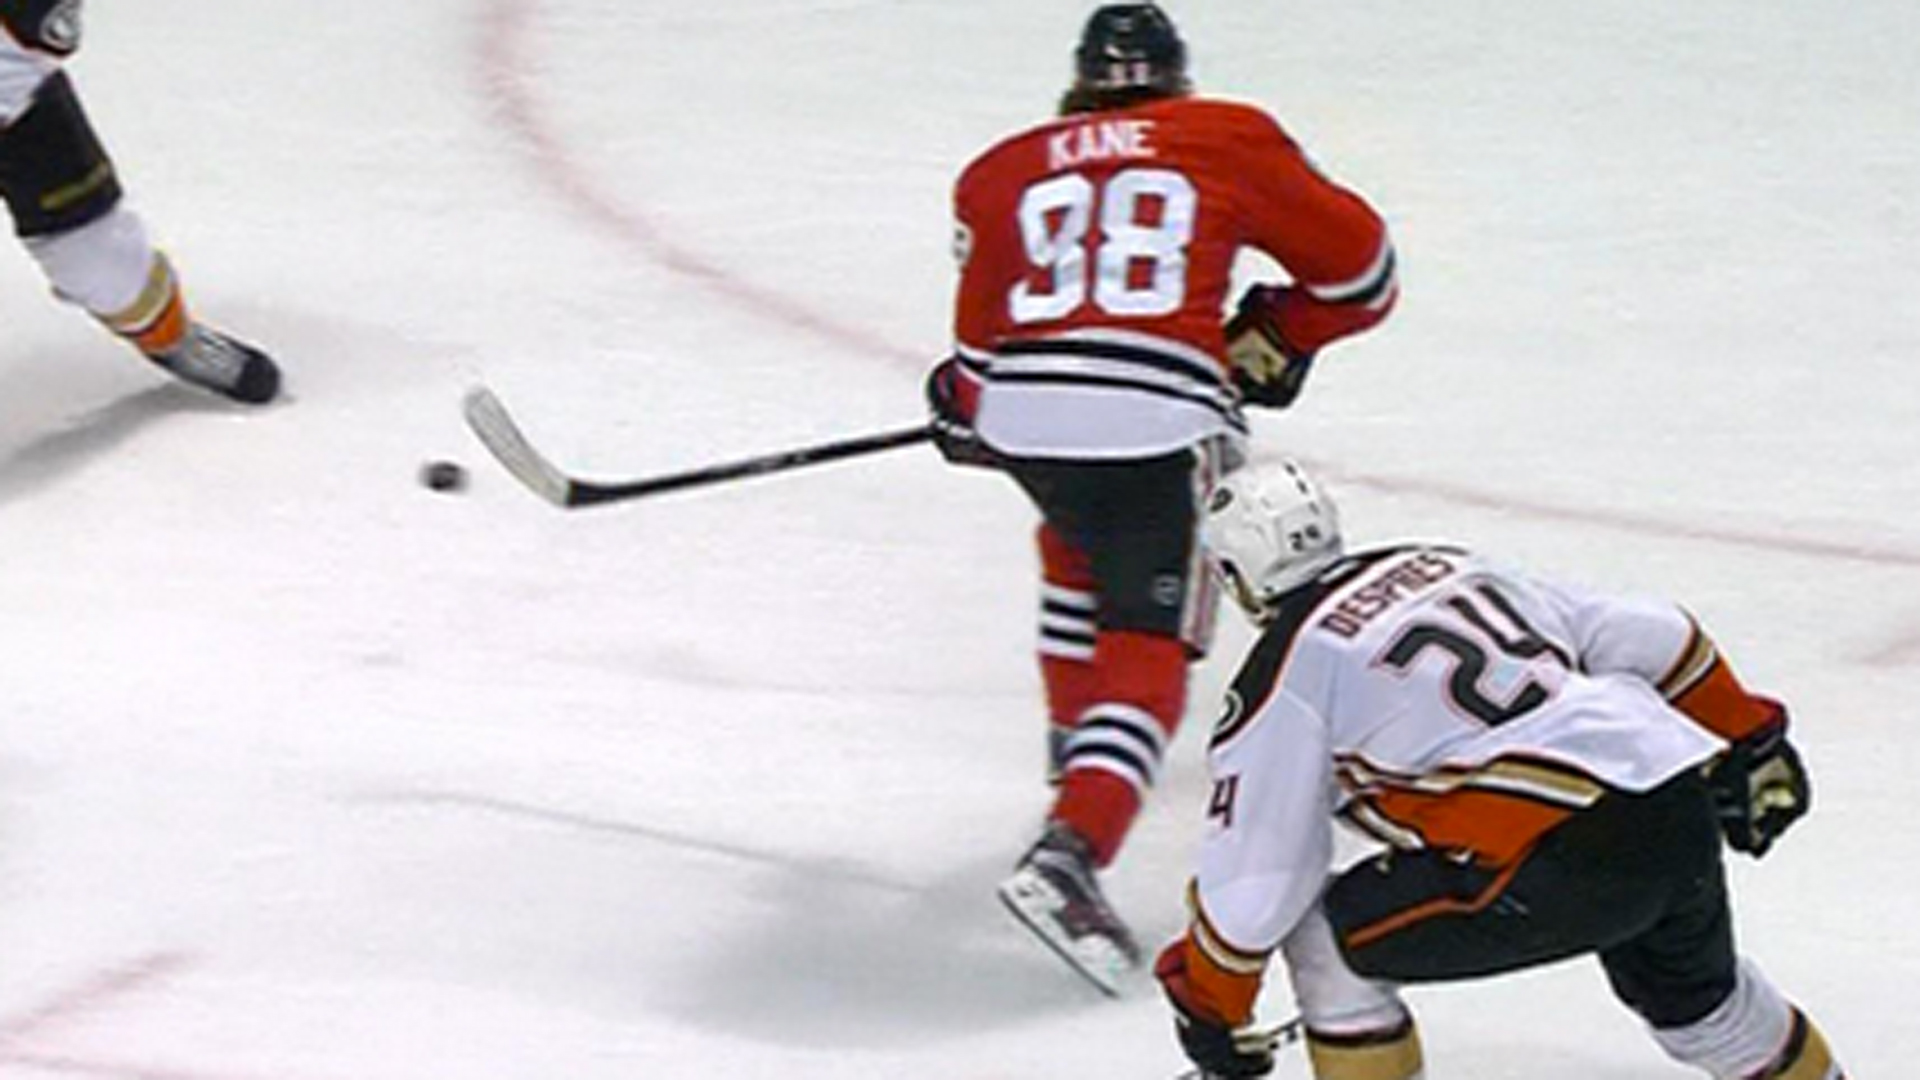 'Playoff' Patrick Kane rips beautiful backhand shot past Frederik Andersen